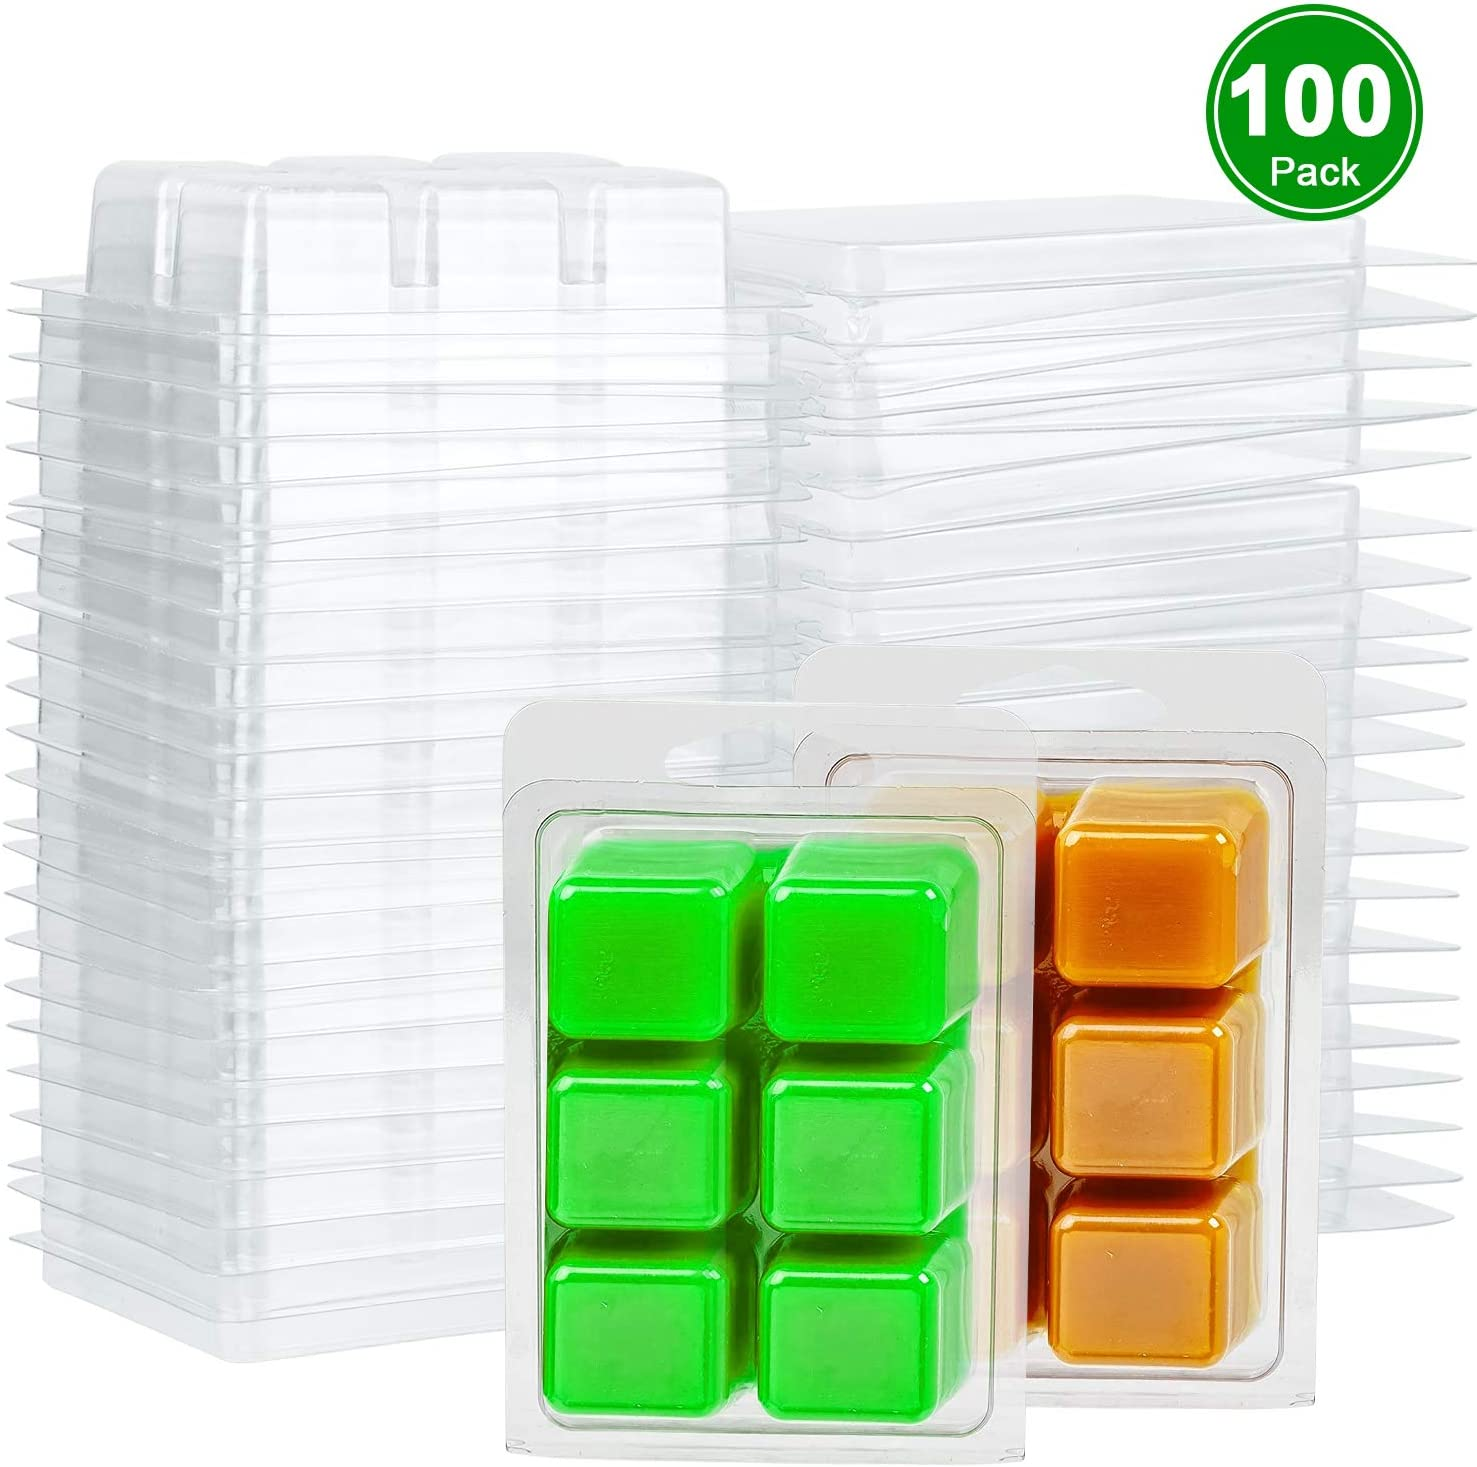 6 Cavity Clear Plastic Cube Tray for Candle-Making /& Soap Perkisboby 100 Packs Wax Melt Clamshells Molds Square